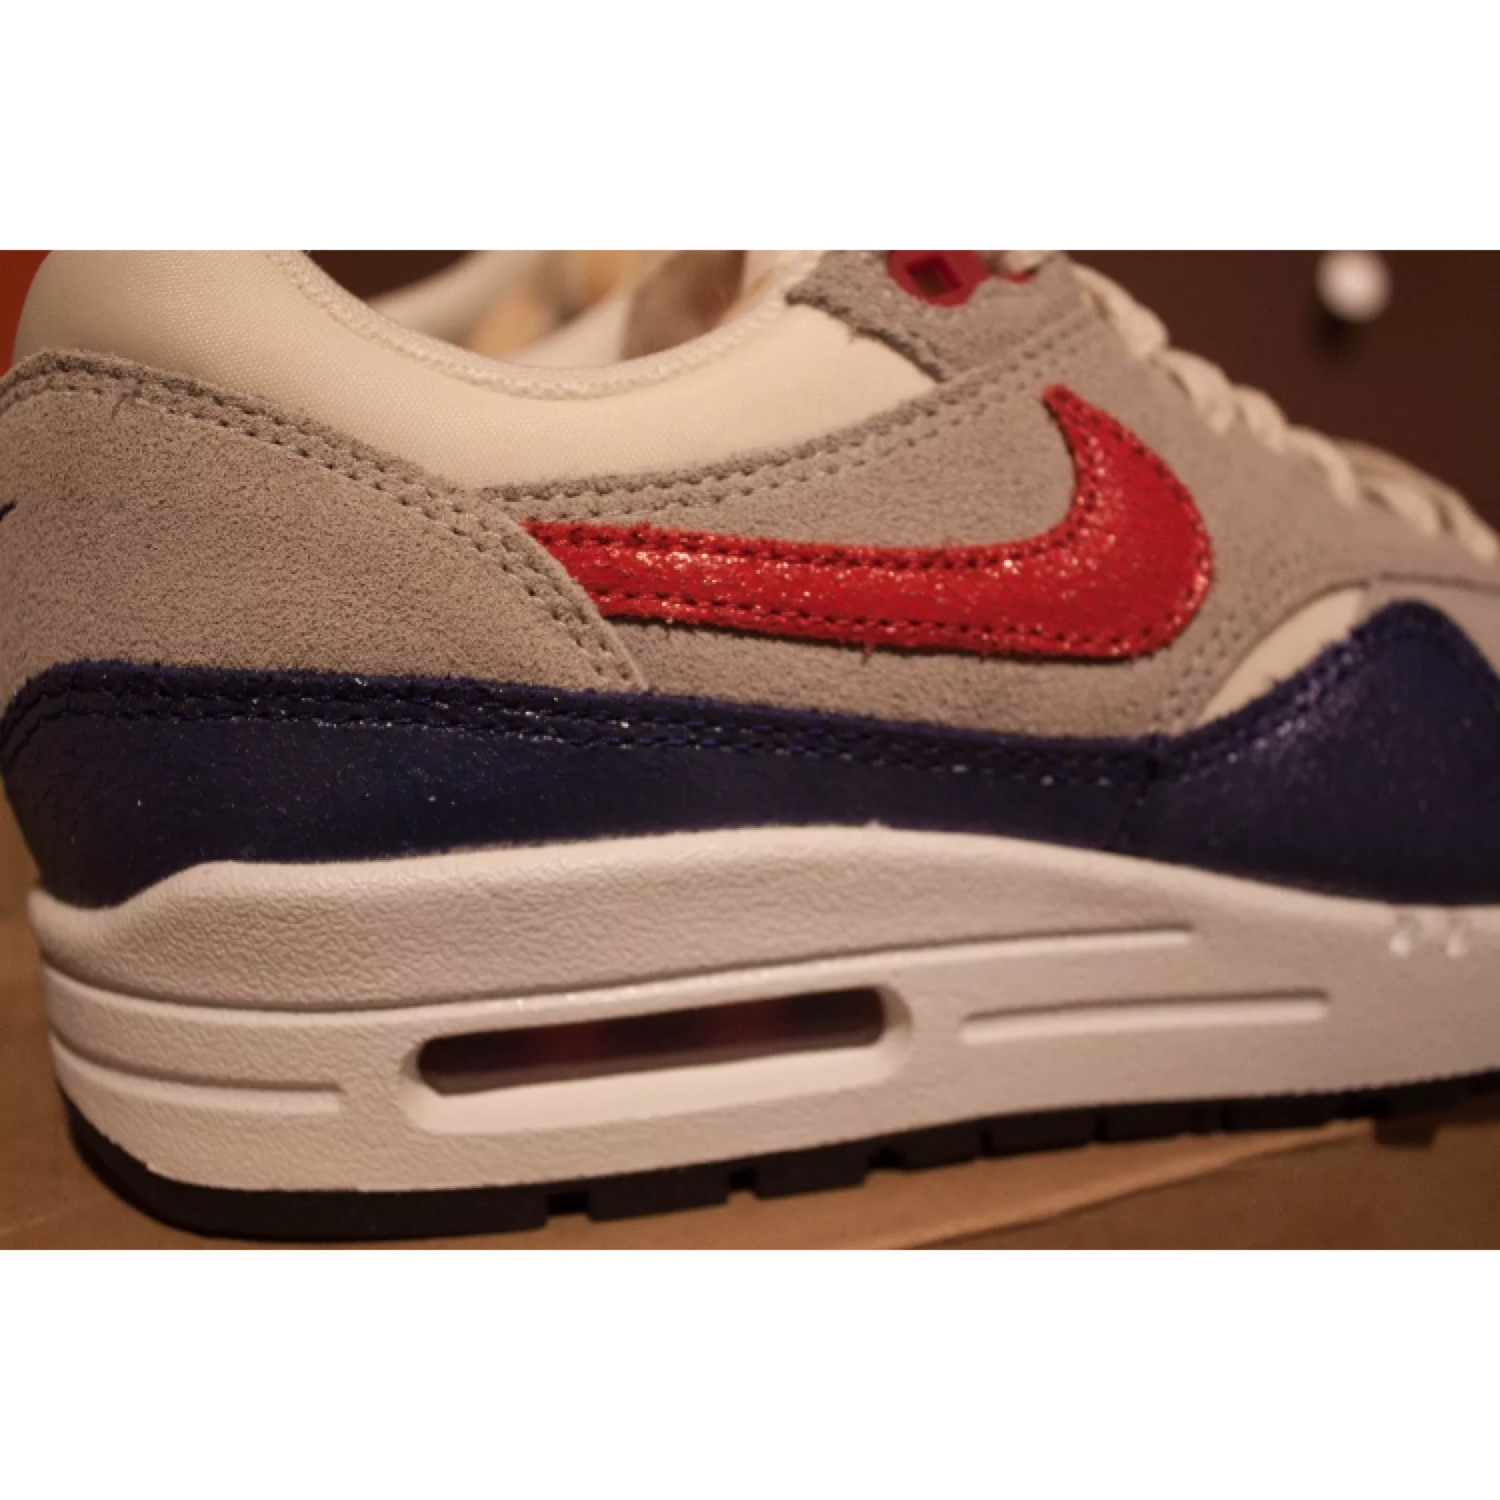 Nike Air Max 1 Vintage Sail Hyped Red Grey